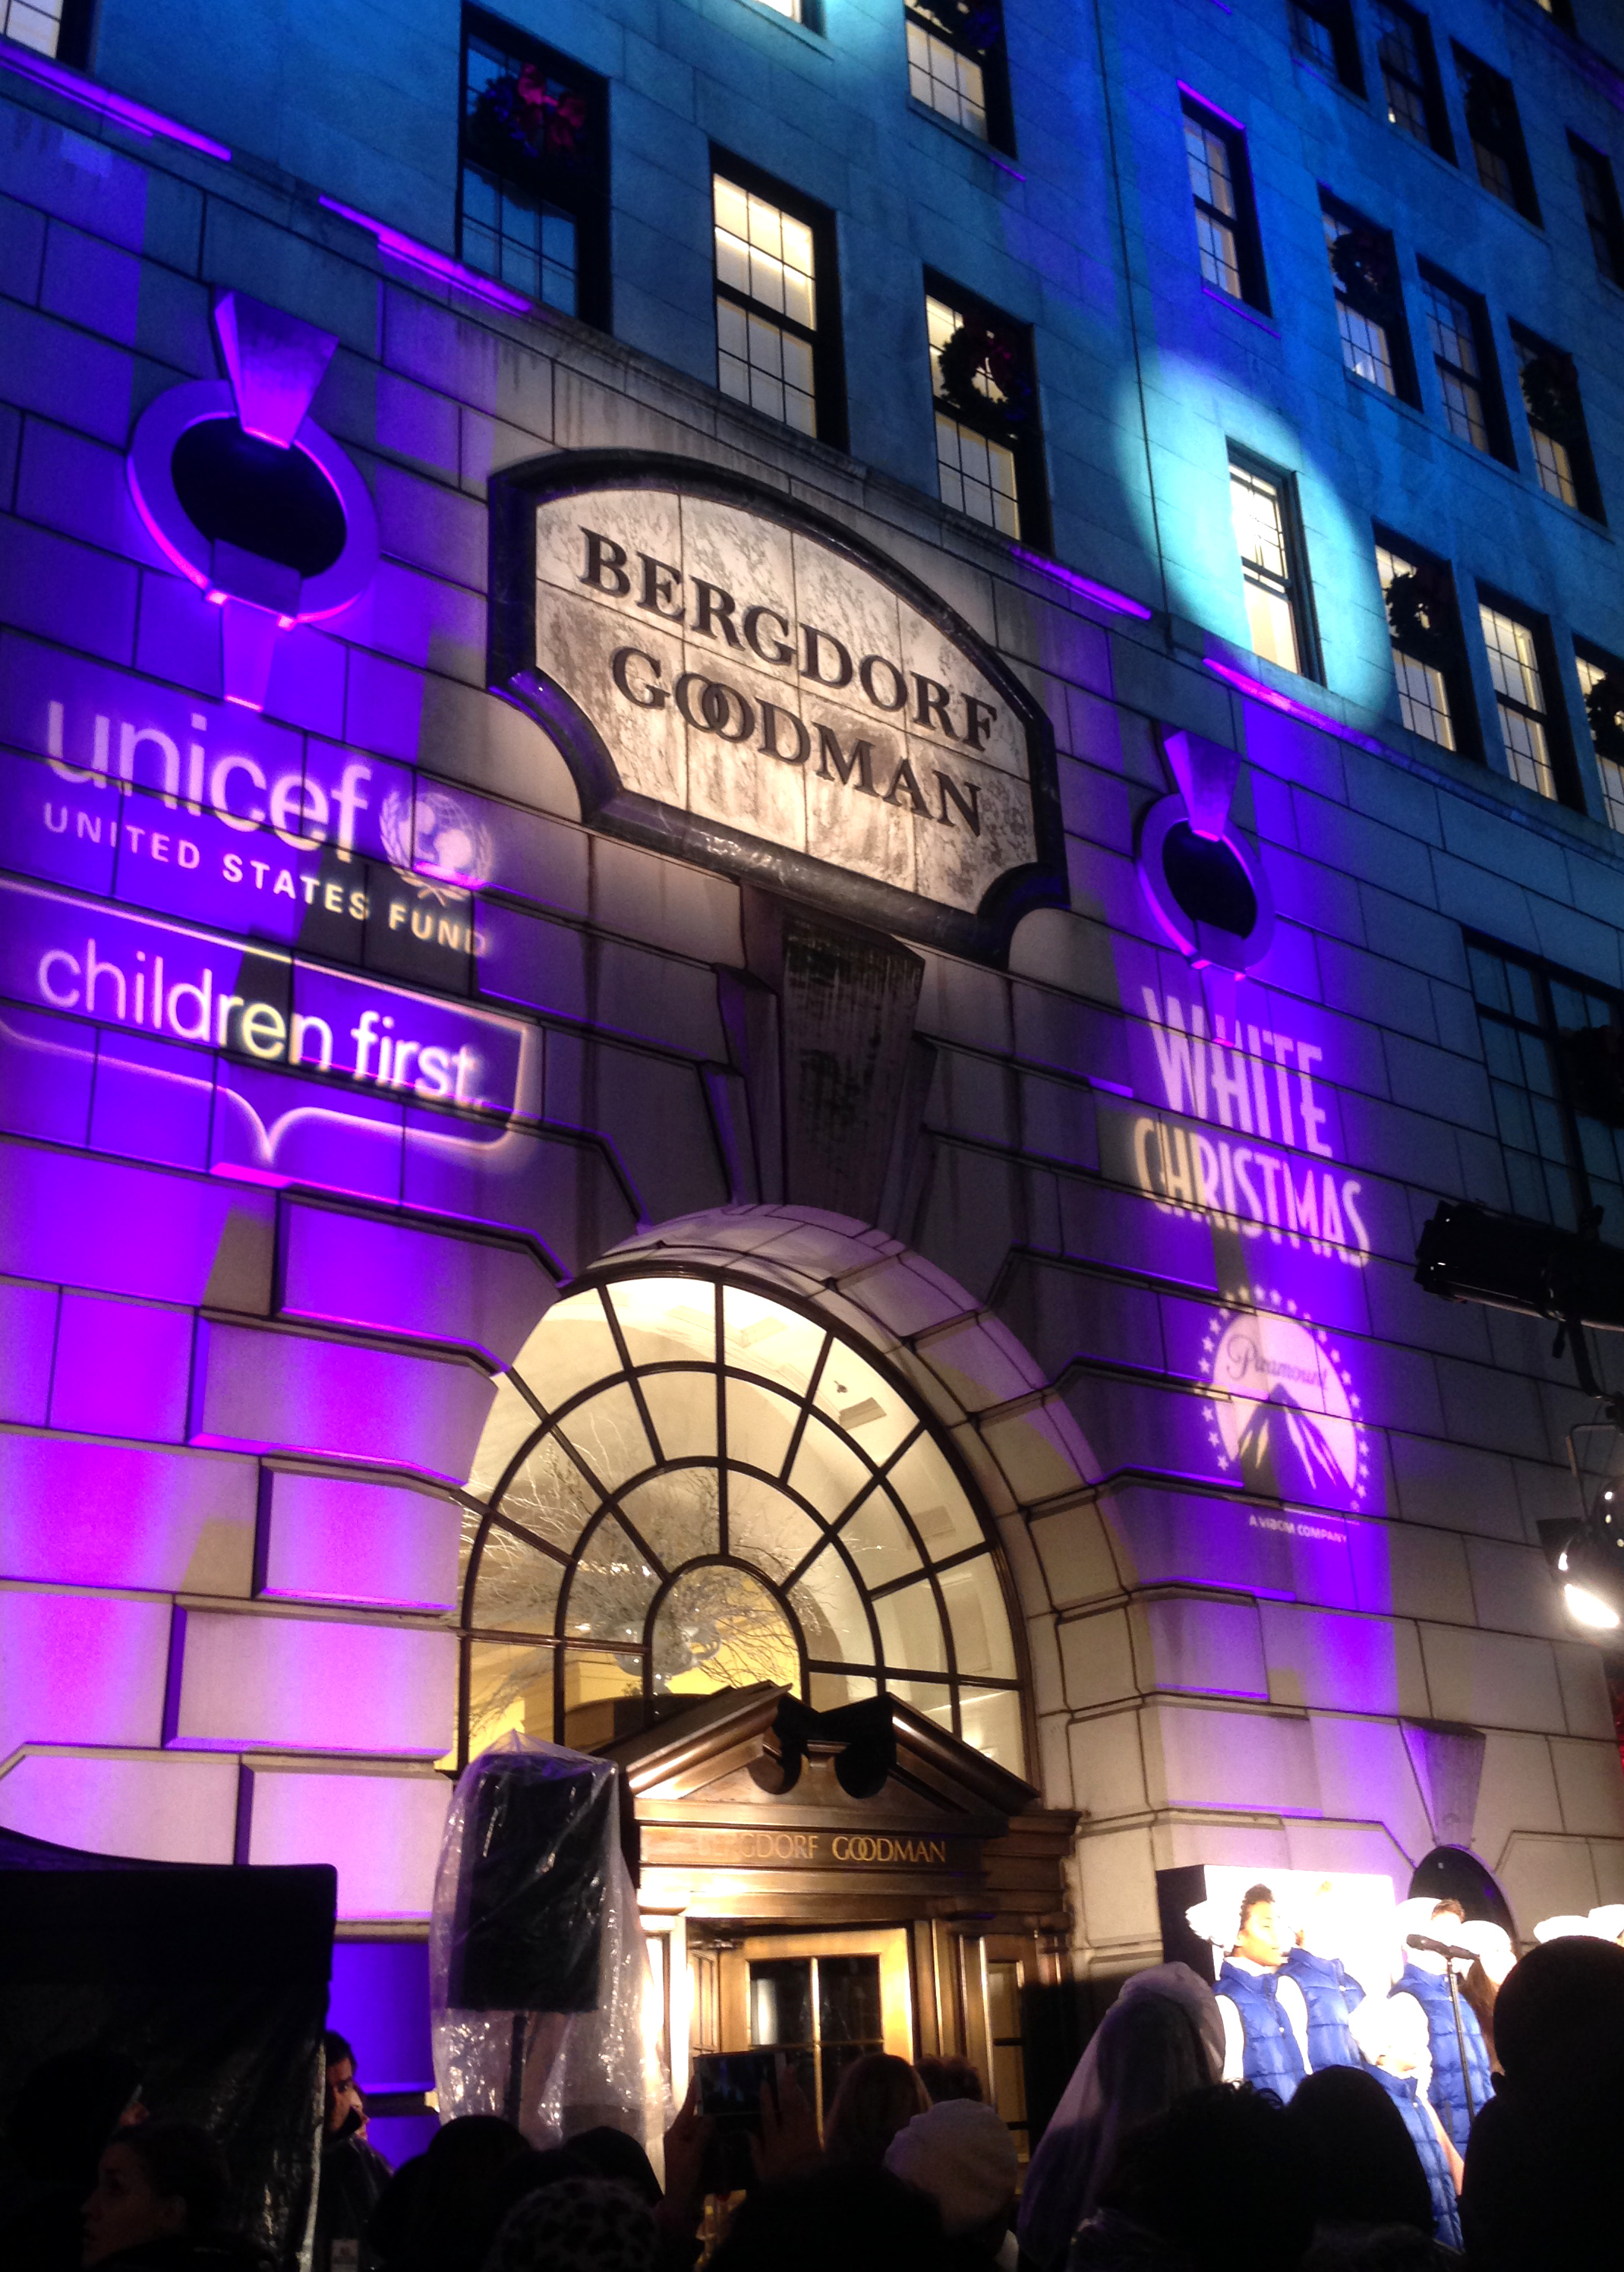 From The Massive Menorah To Colossal Christmas Tree Mary In Lighting Diagram Bergdorf Windows